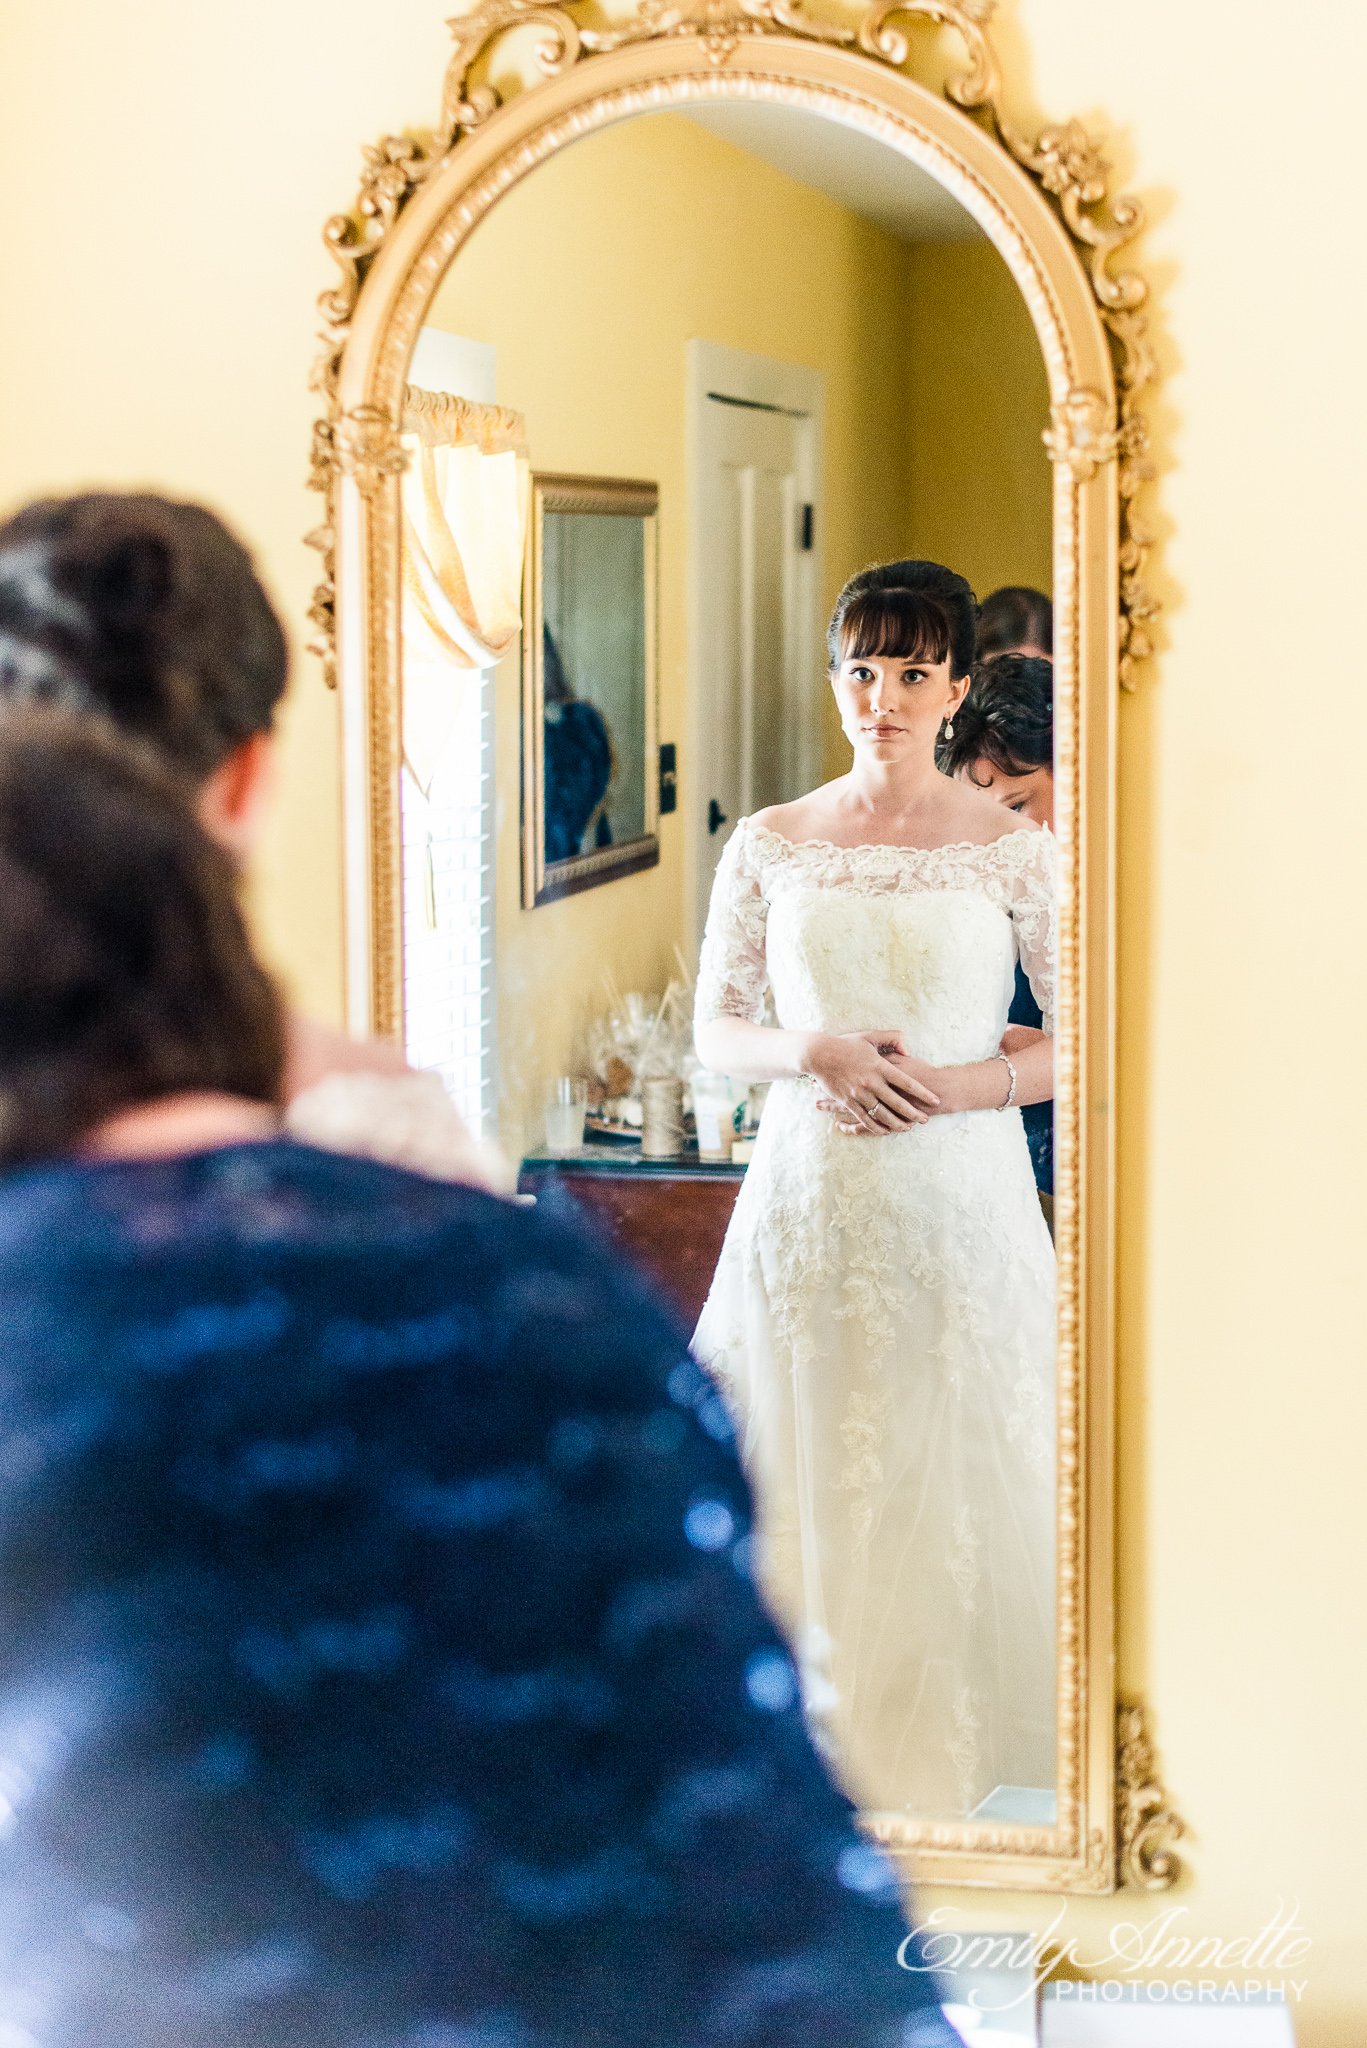 A bride looks through the mirror while the mother of the bride helps her daughter get dressed before her wedding ceremony at Amber Grove near Richmond, Virginia